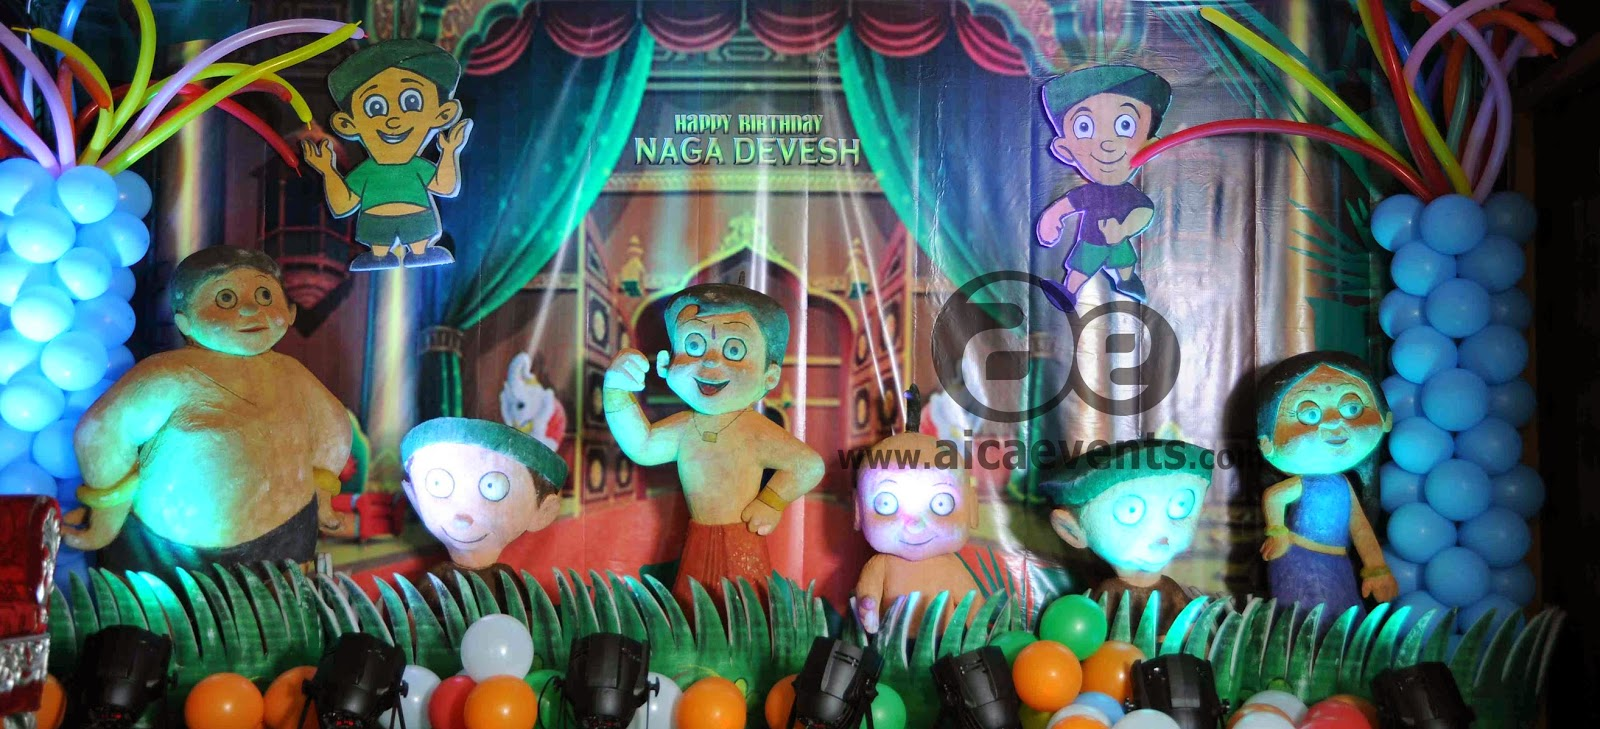 Aicaevents Chhota Bheem Theme Decorations